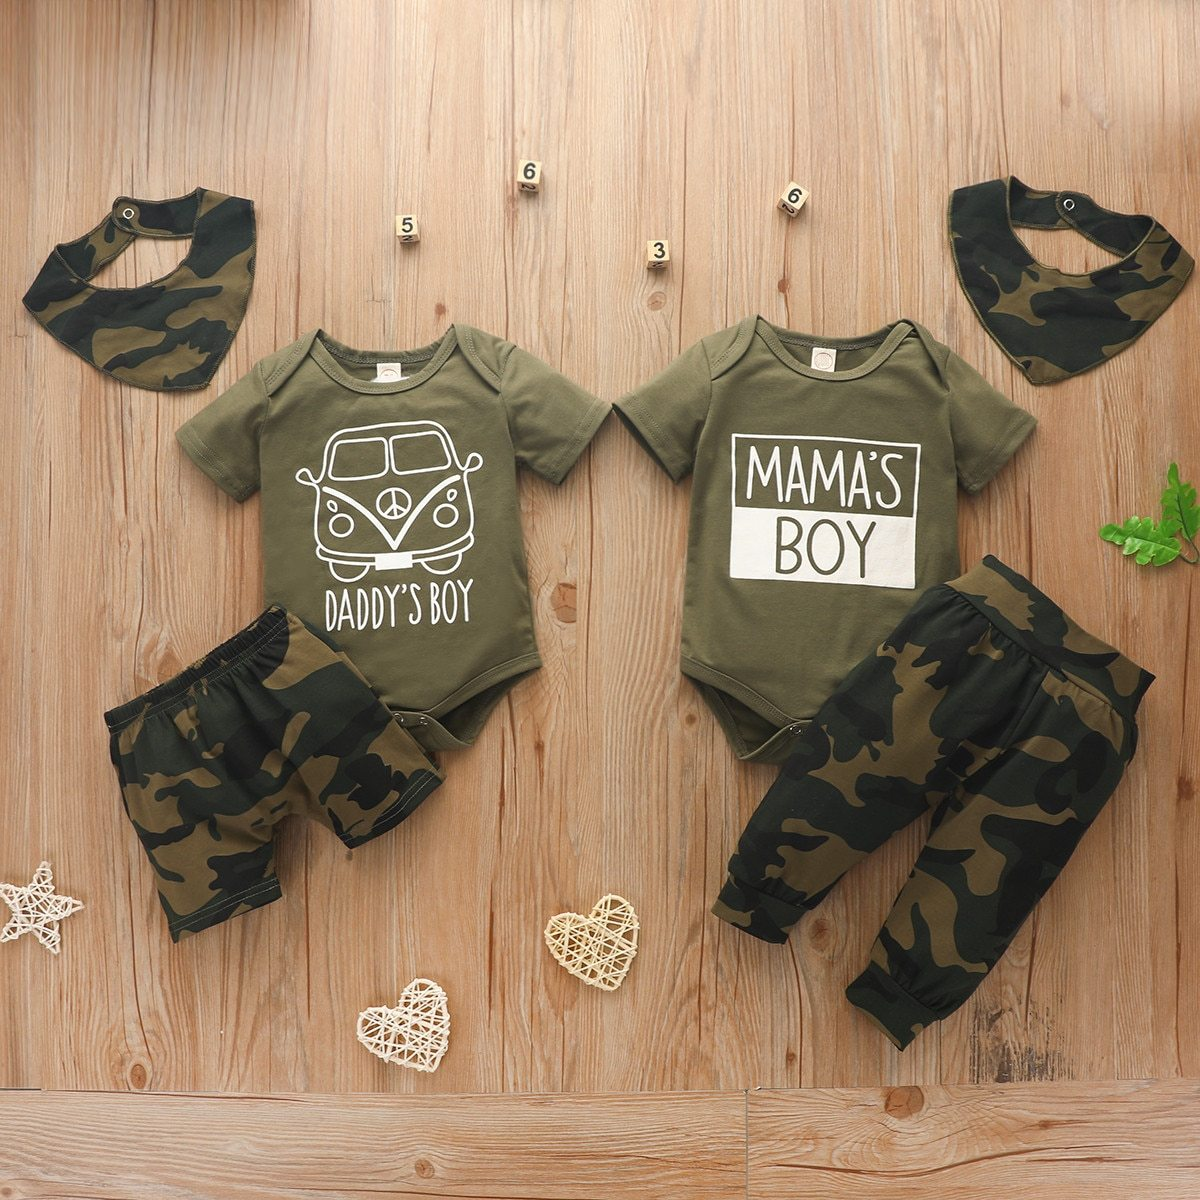 0-18 Months New 3 Pcs Baby Mama's Boy Summer Set Print Letter Short Sleeve Romper Top Camouflage Print Pants - OUTLATTE